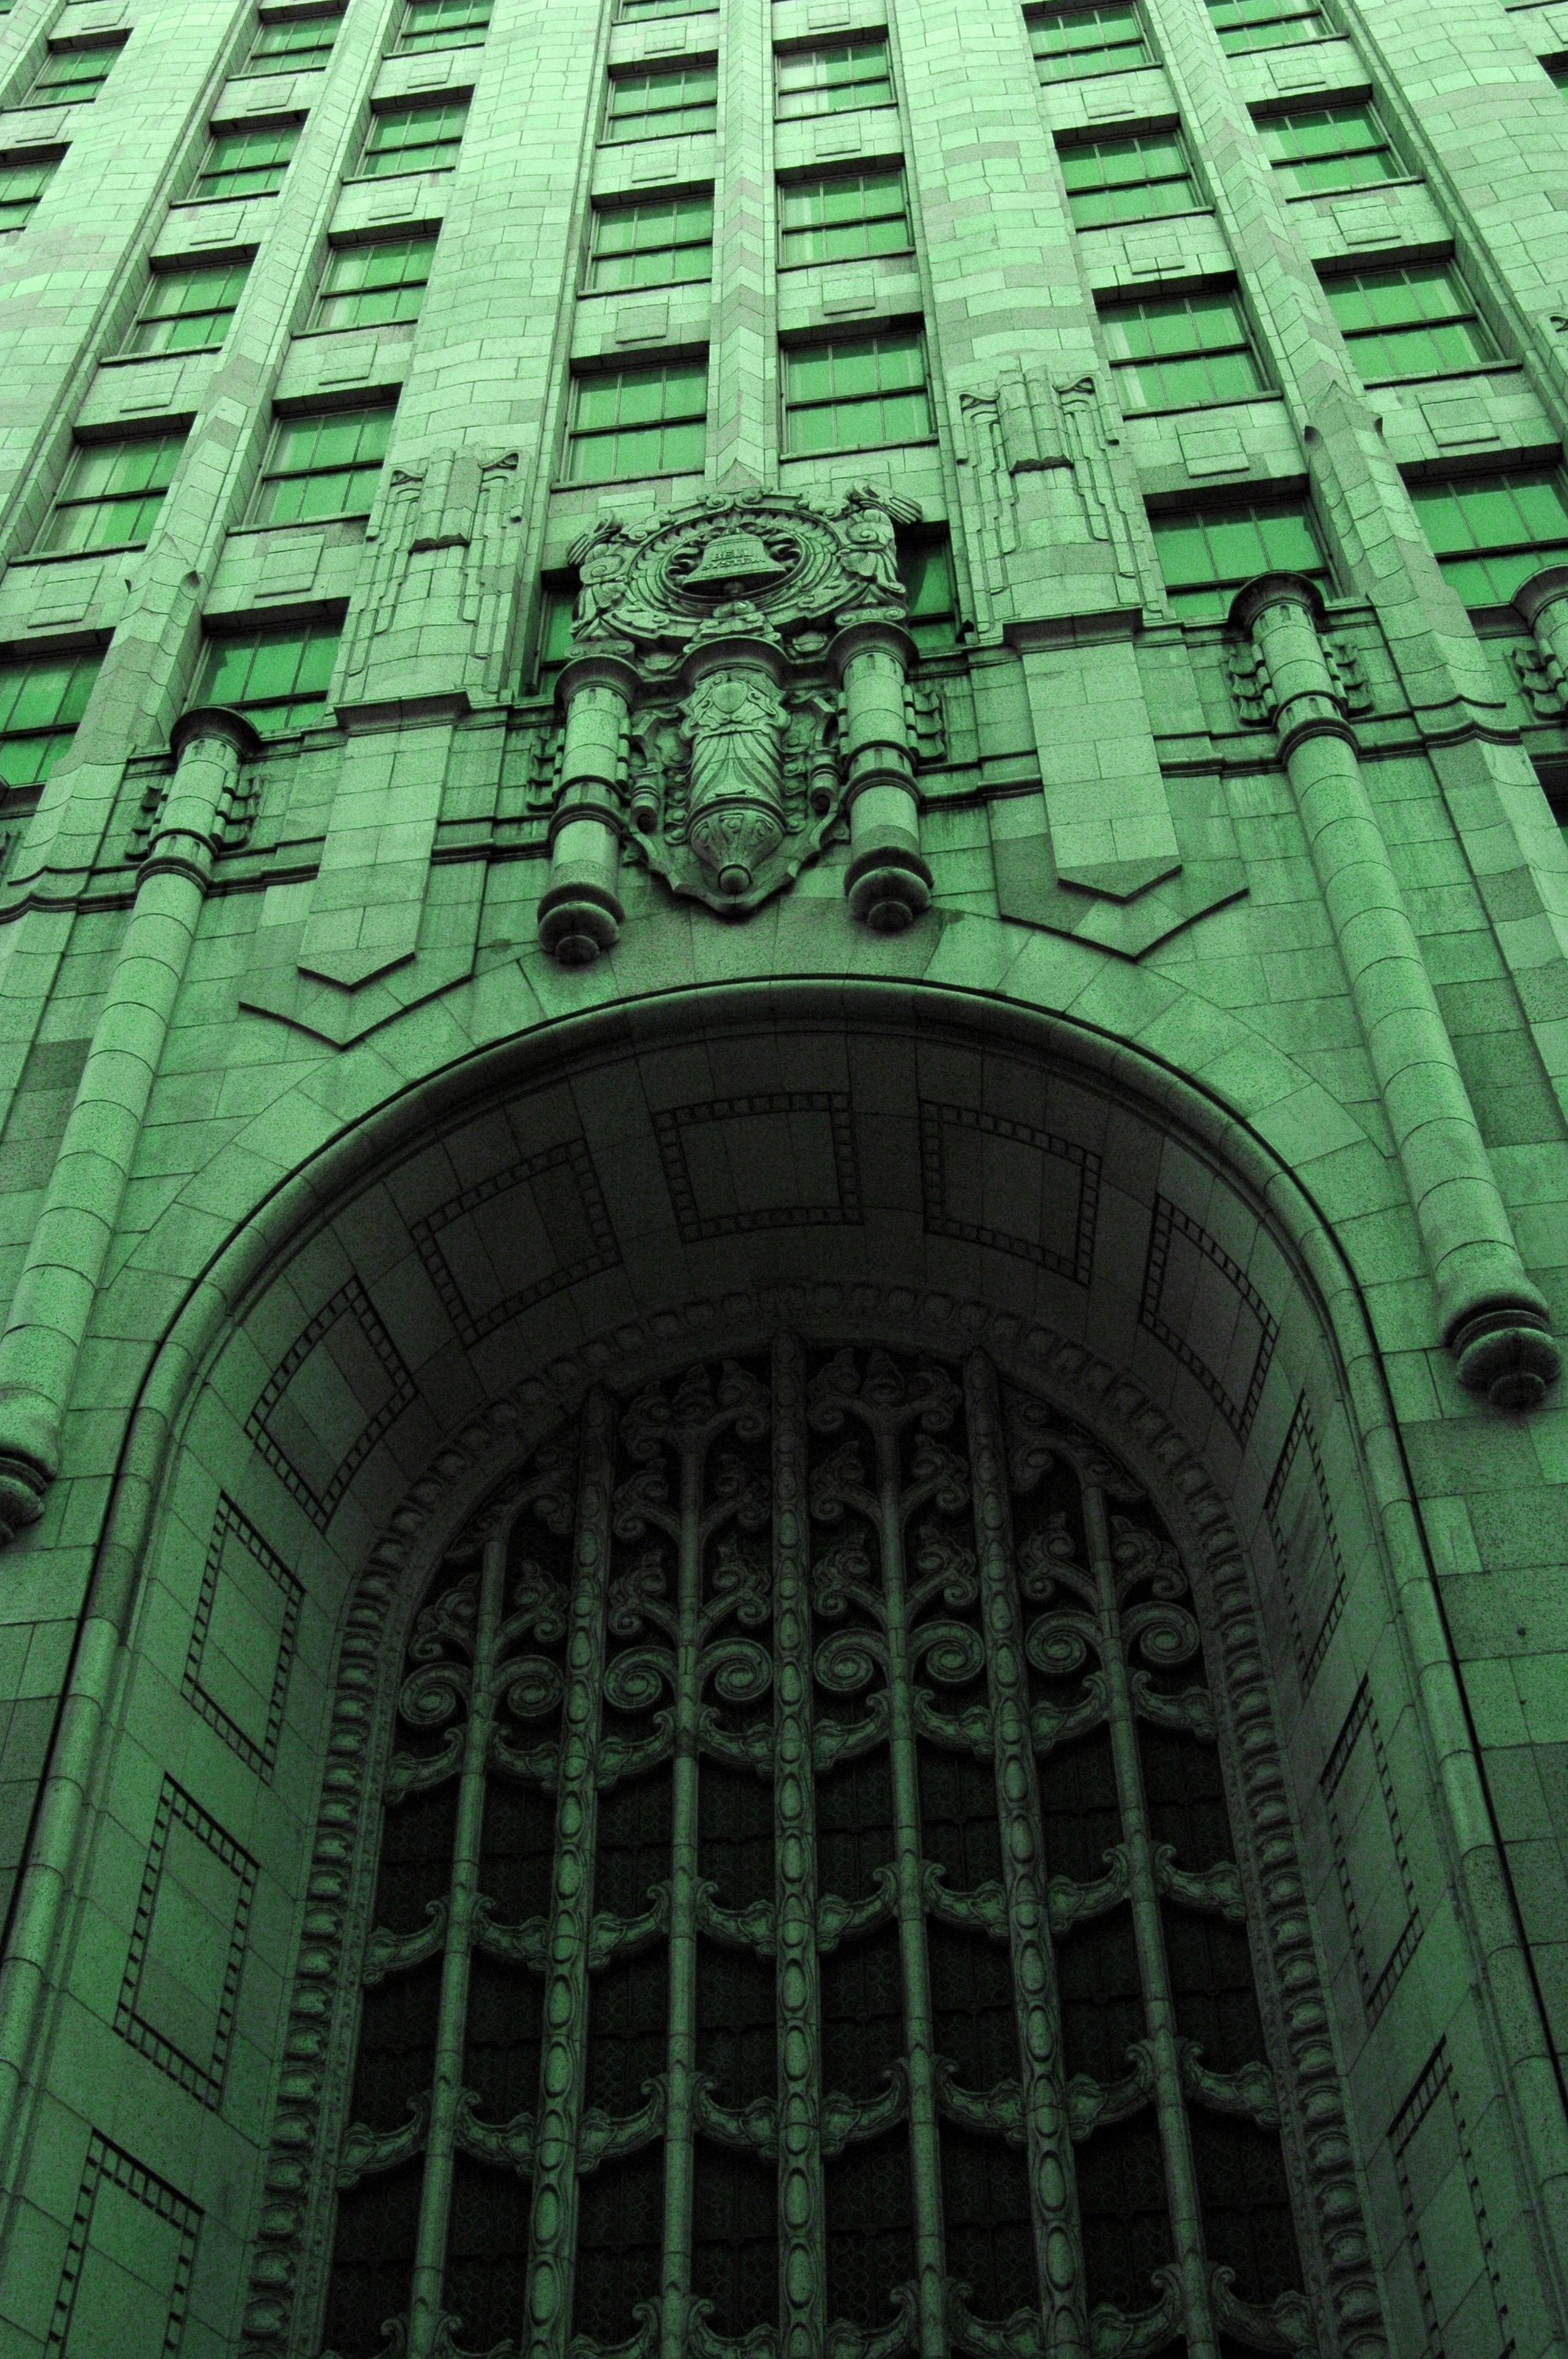 """ Going Green, The Ma Bell Building, art deco archway and details "" by  Wonderland  is licensed under  CC BY 2.0 ."